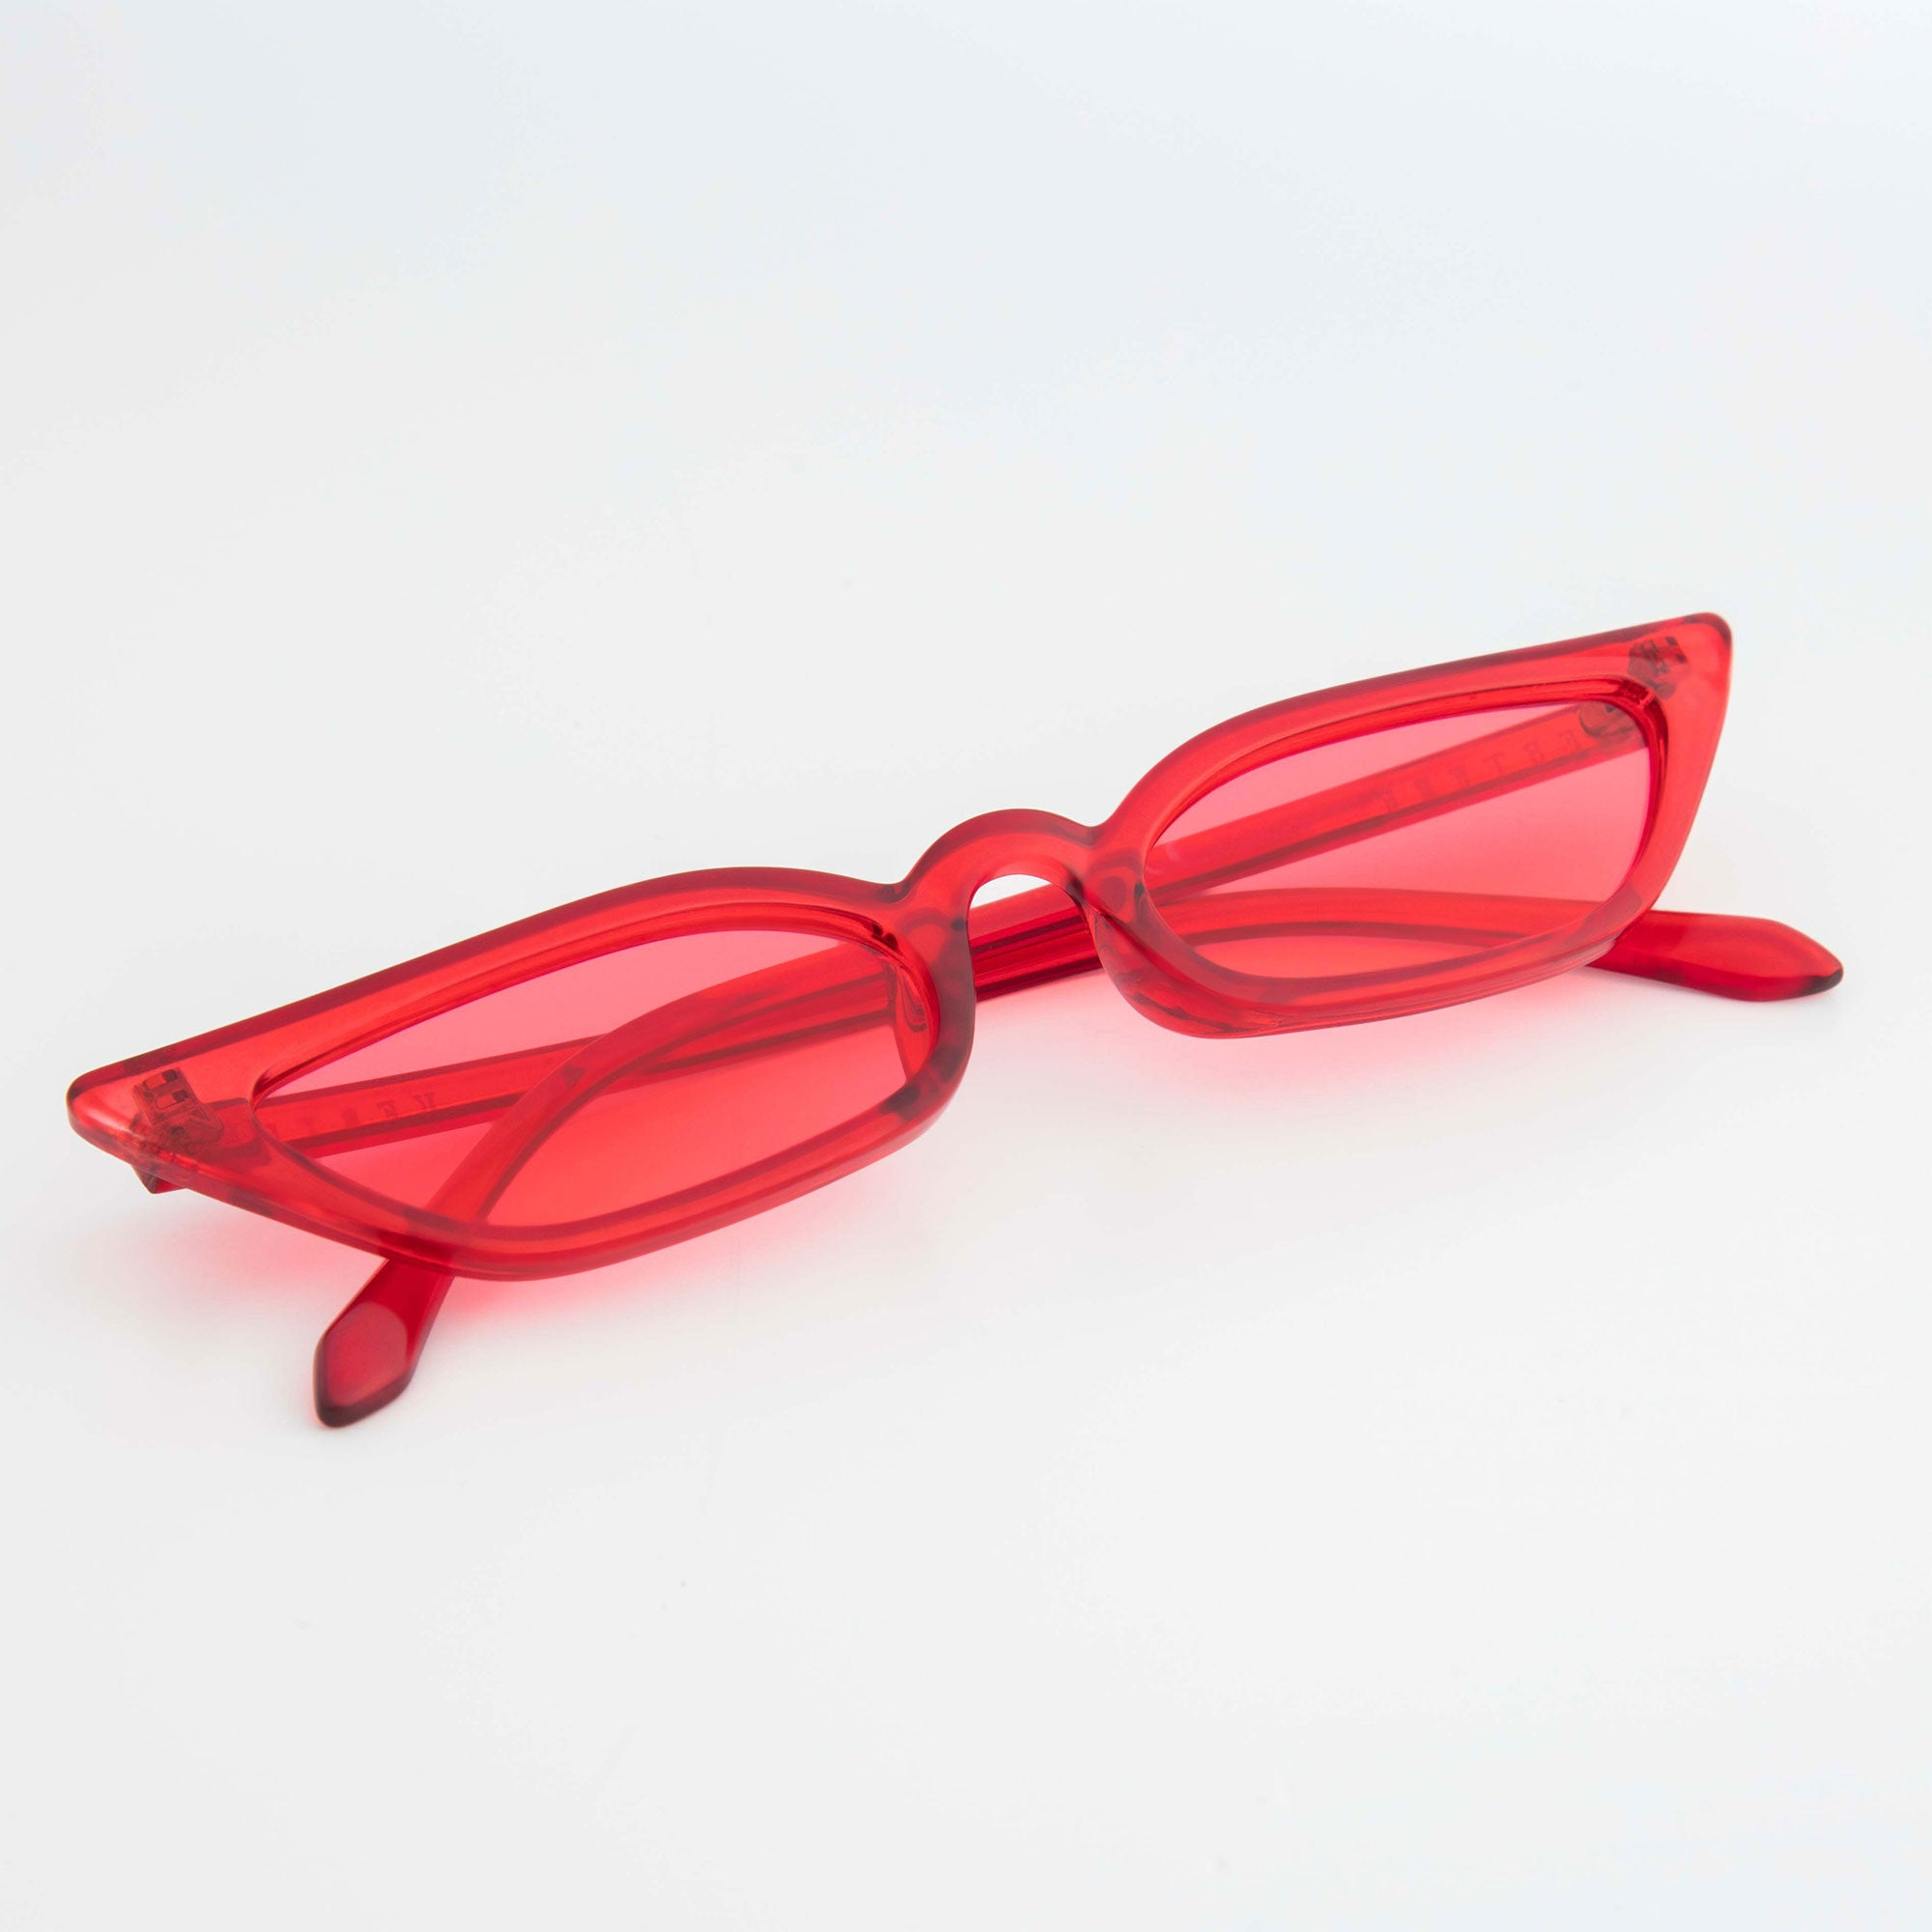 CLEAR CATEYE SUNGLASSES - RED